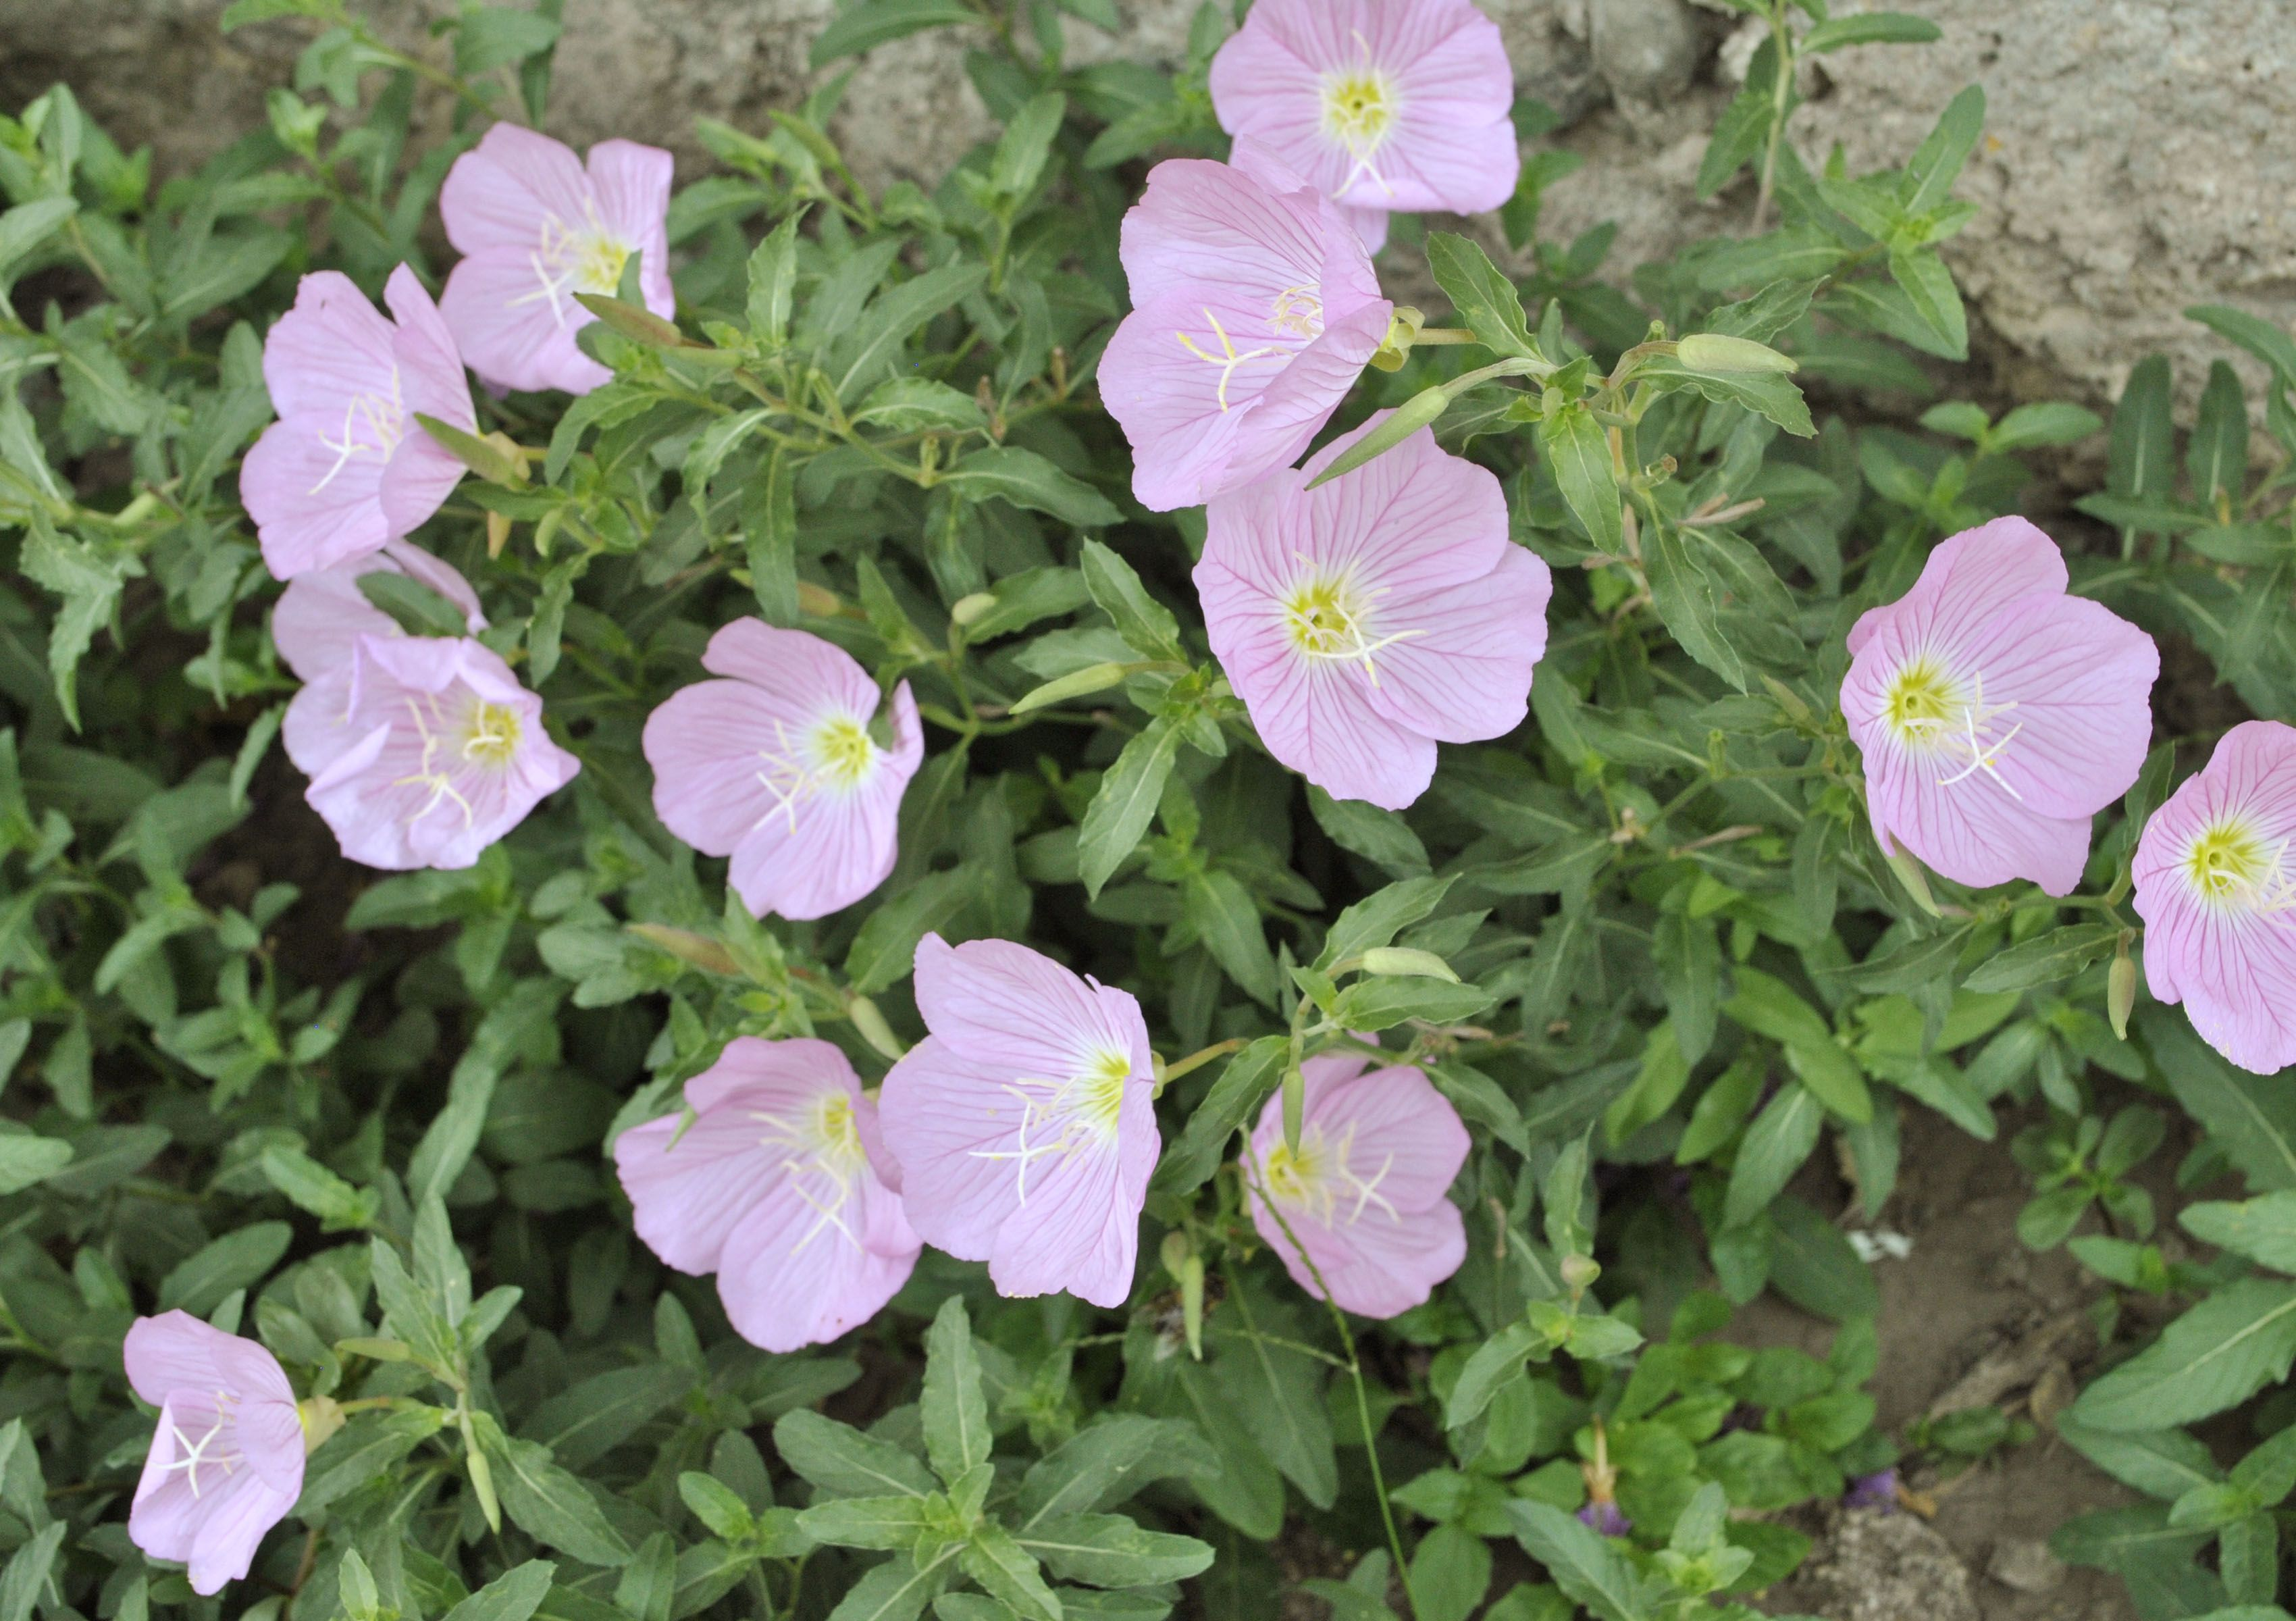 Evening Primrose Oenothera Biennis Is An American Native Biennial Plant For Some It Considered To Be A Weed Because Self Seeds Rapidly And